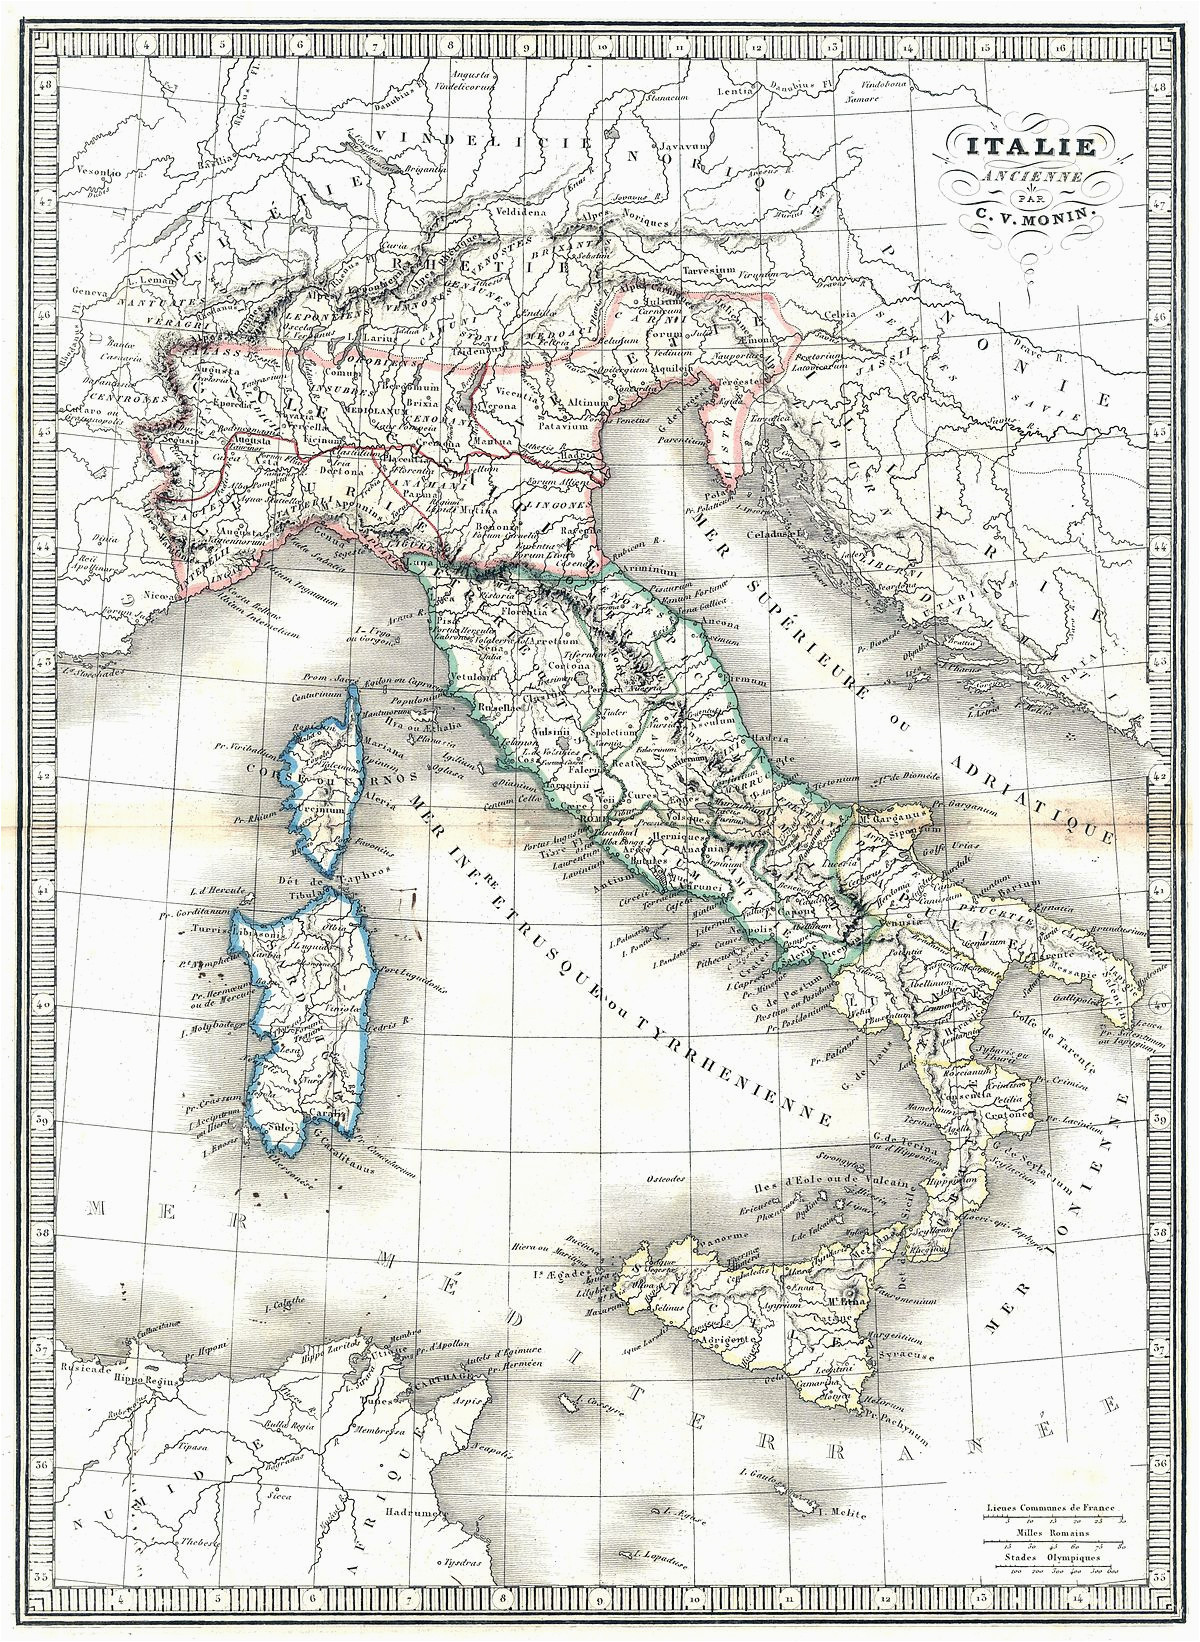 Map Of England France And Italy.Map Of England France And Italy Military History Of Italy During